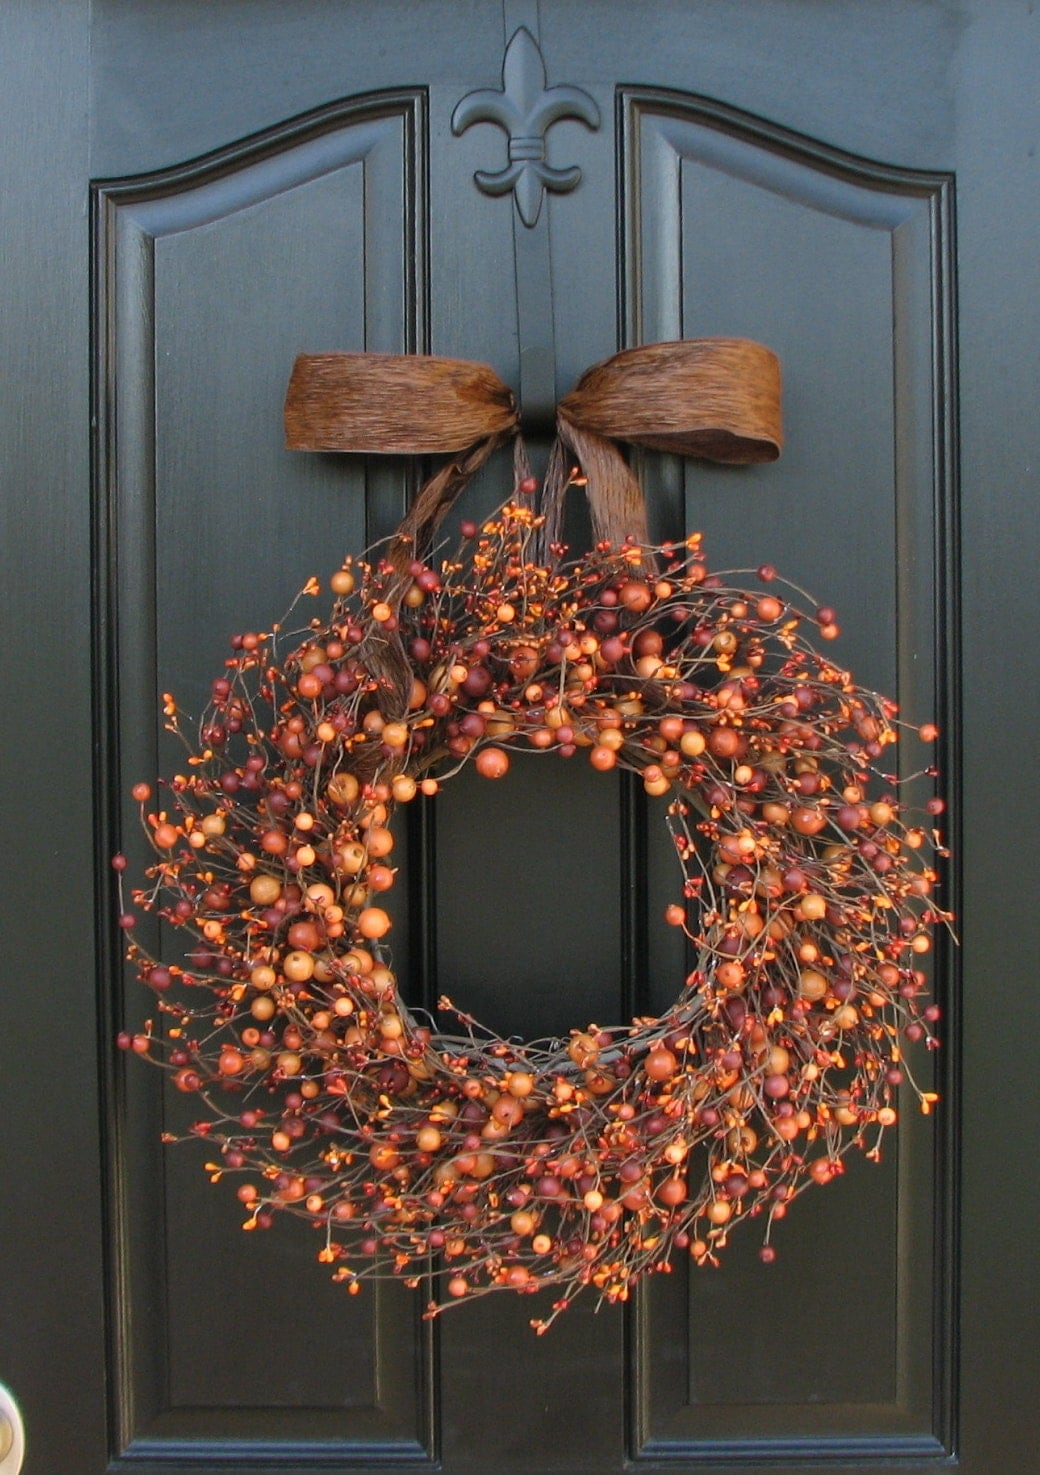 Pumpkin Pie - Fall Berry Wreath - Harvested Berries - Orange Berry Wreaths - Halloween Decor - Front Door Display